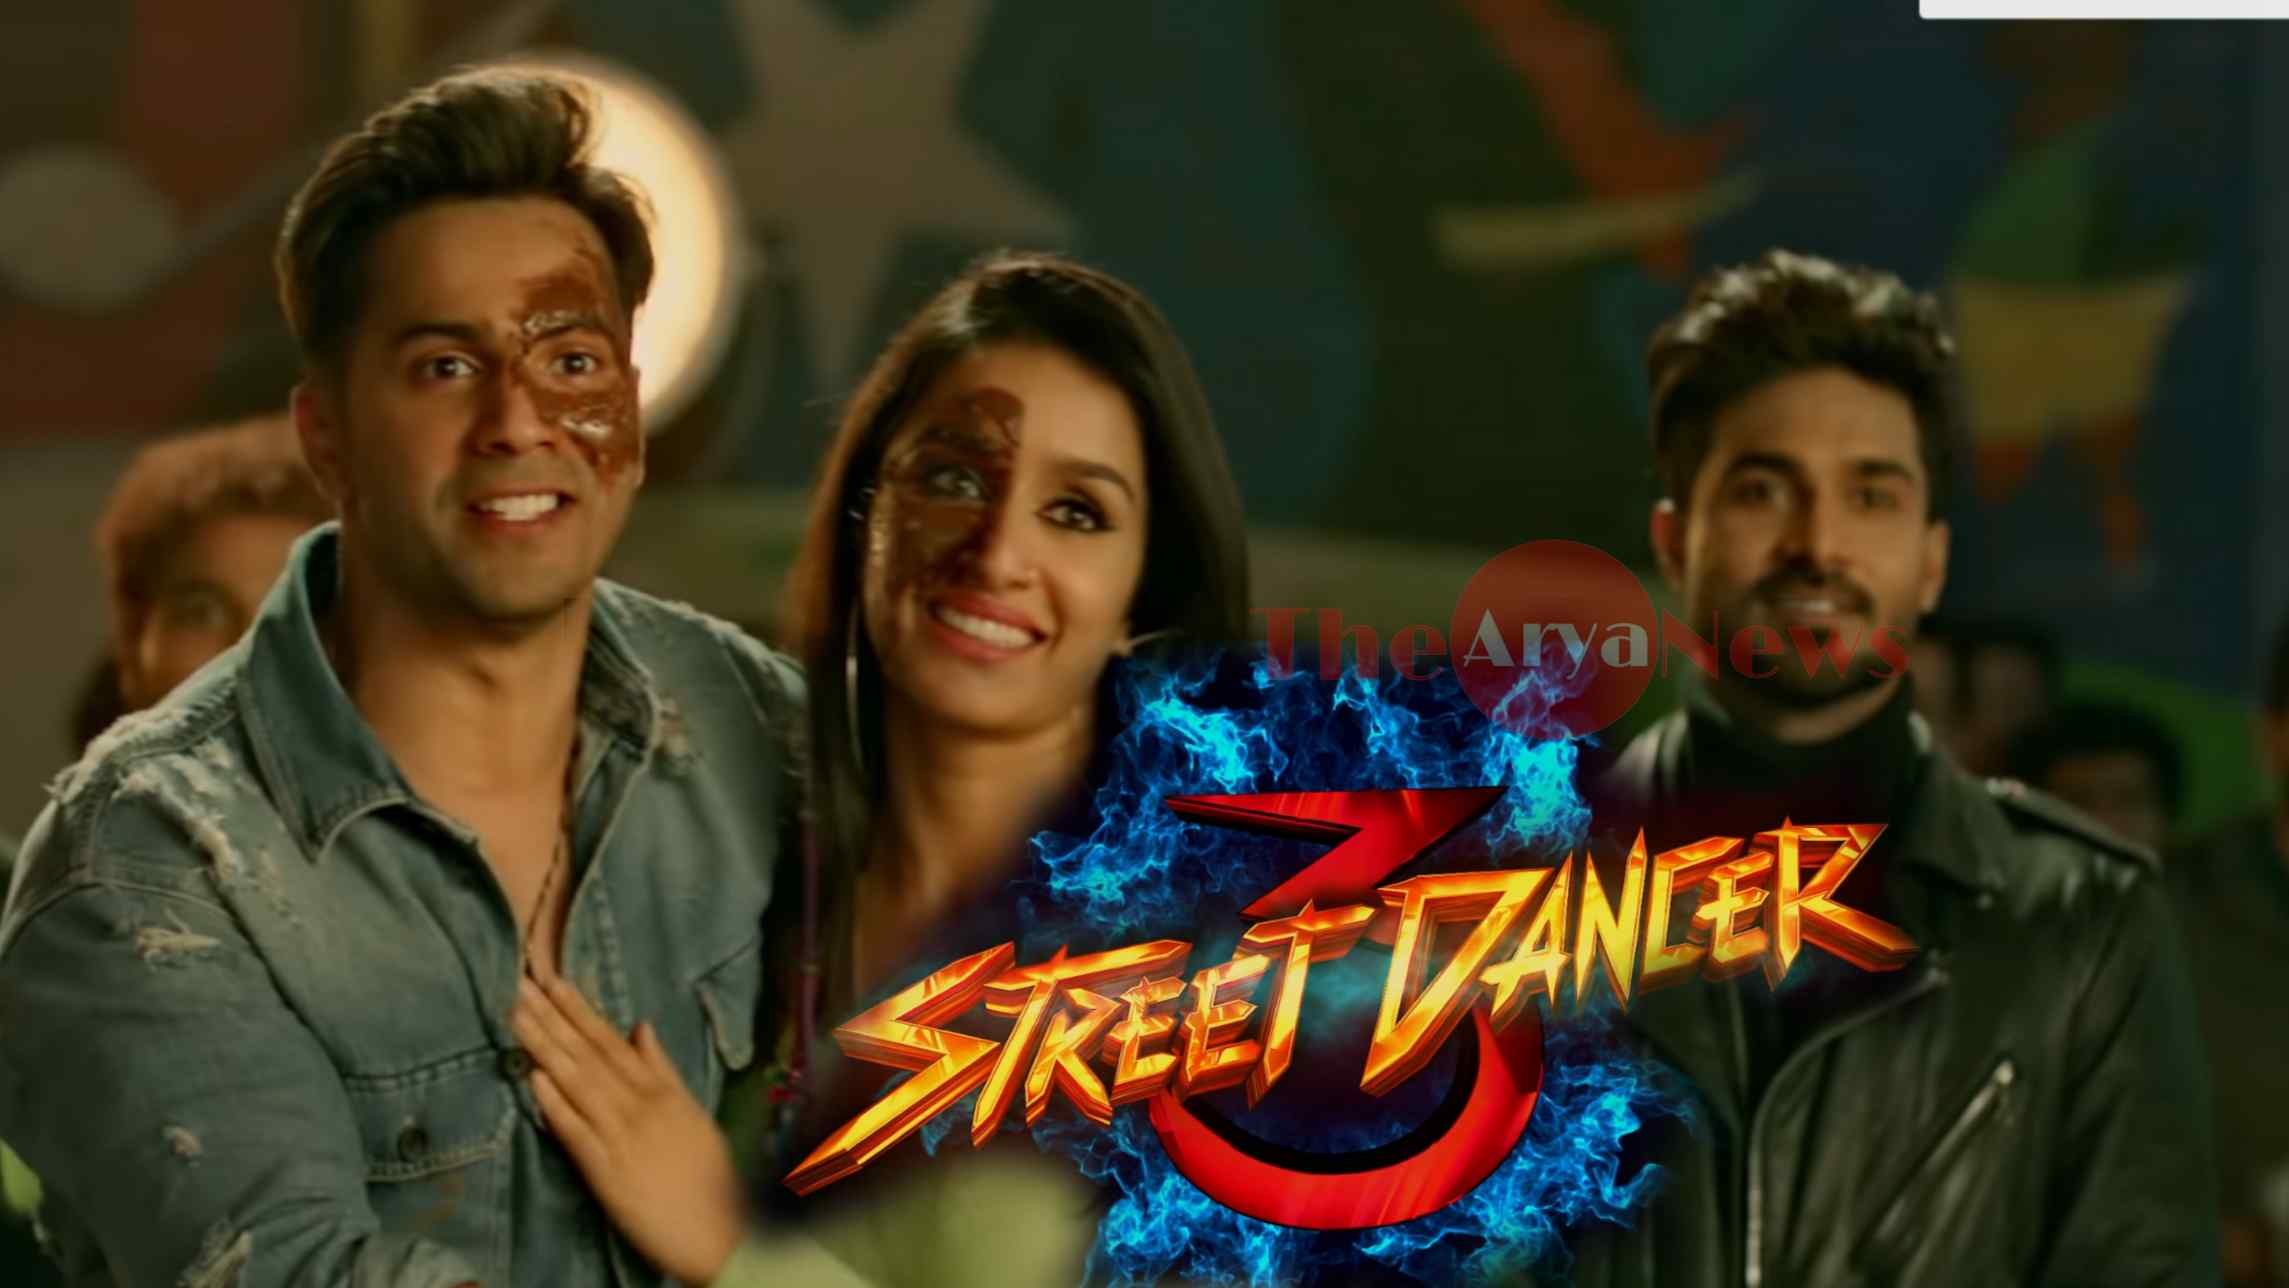 Street Dancer 3d 2020 Full Hd Leaked Movie Download On Filmyzilla Thearyanews Com